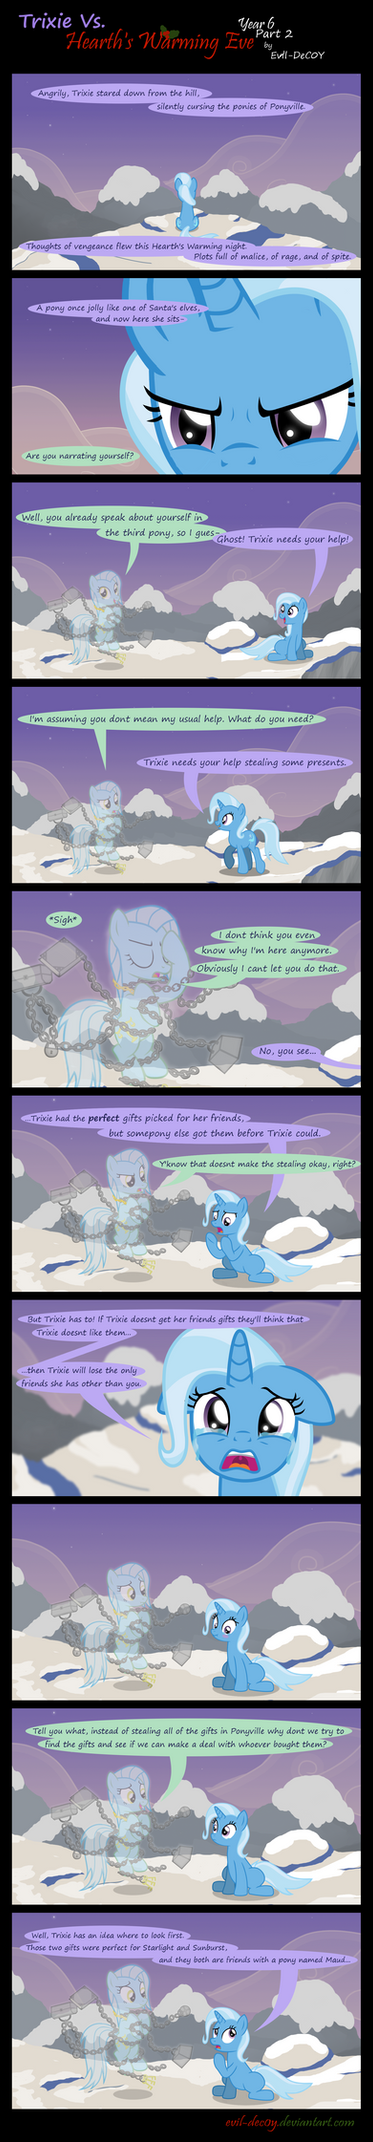 Trixie Vs. Hearth's Warming Eve: Year 6 (Part 2) by Evil-DeC0Y